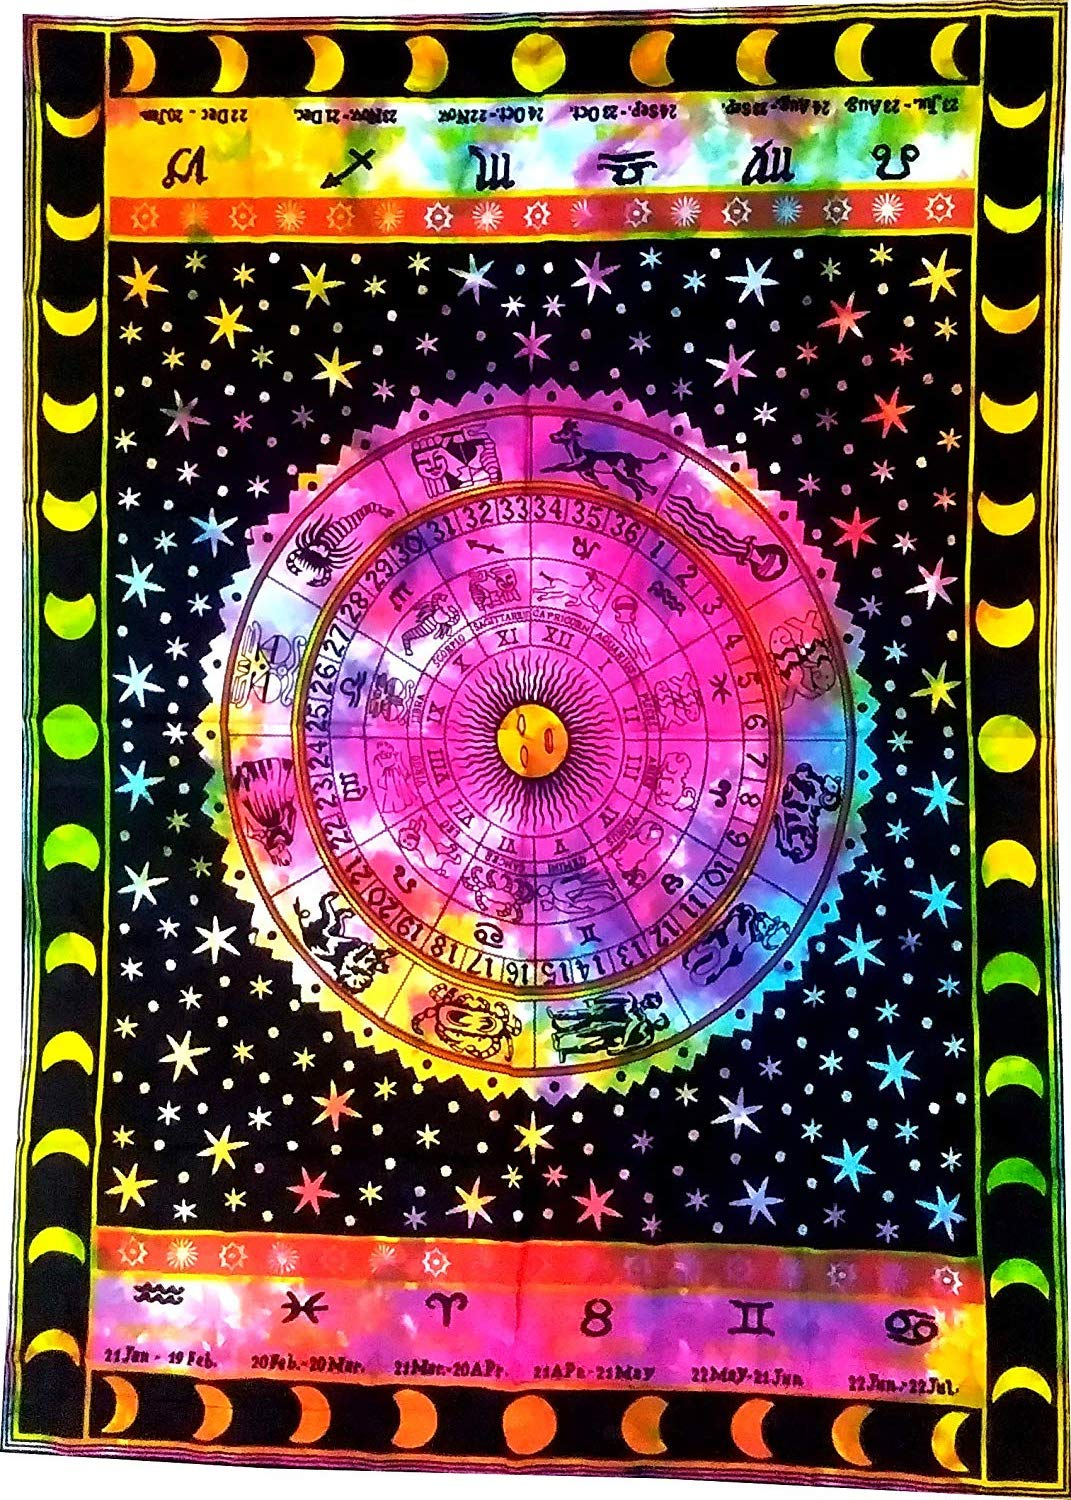 Heyrumbh Handicrafts Zodiac Sign Mandala Wall Hanging Cotton Tapestry (Multi Color, 54 X 84 Inches